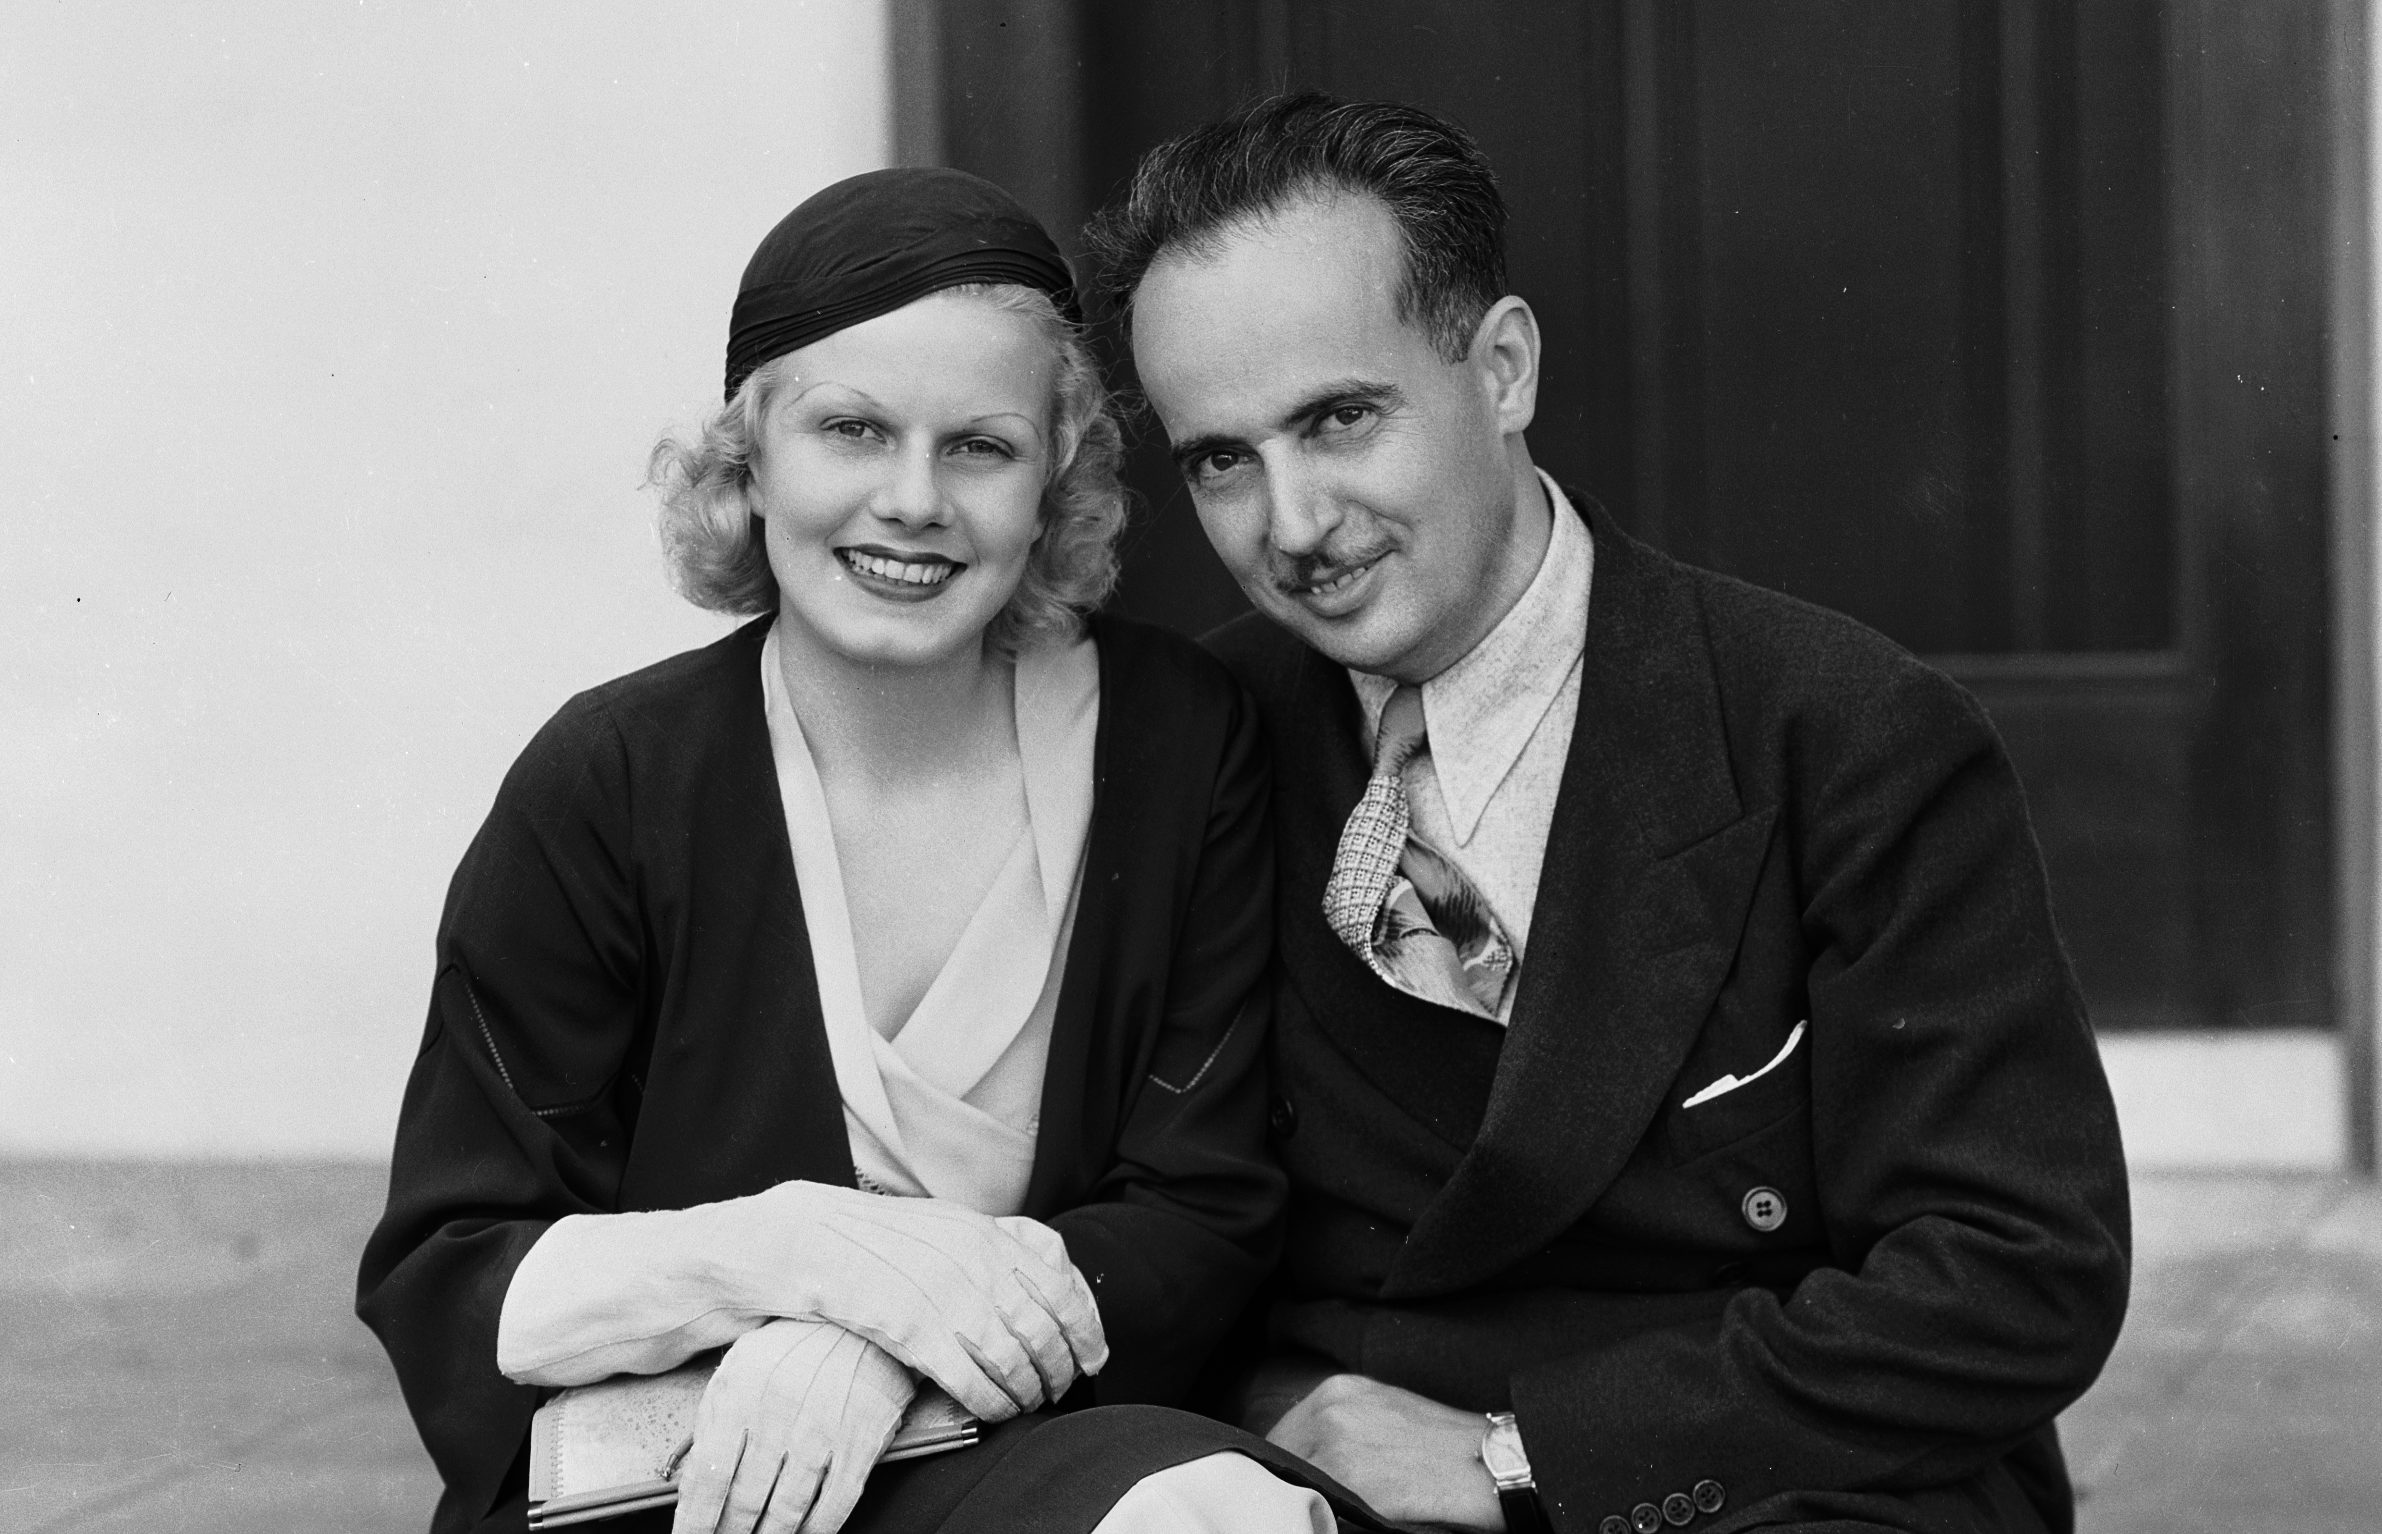 Jean Harlow with her second husband Paul Bern